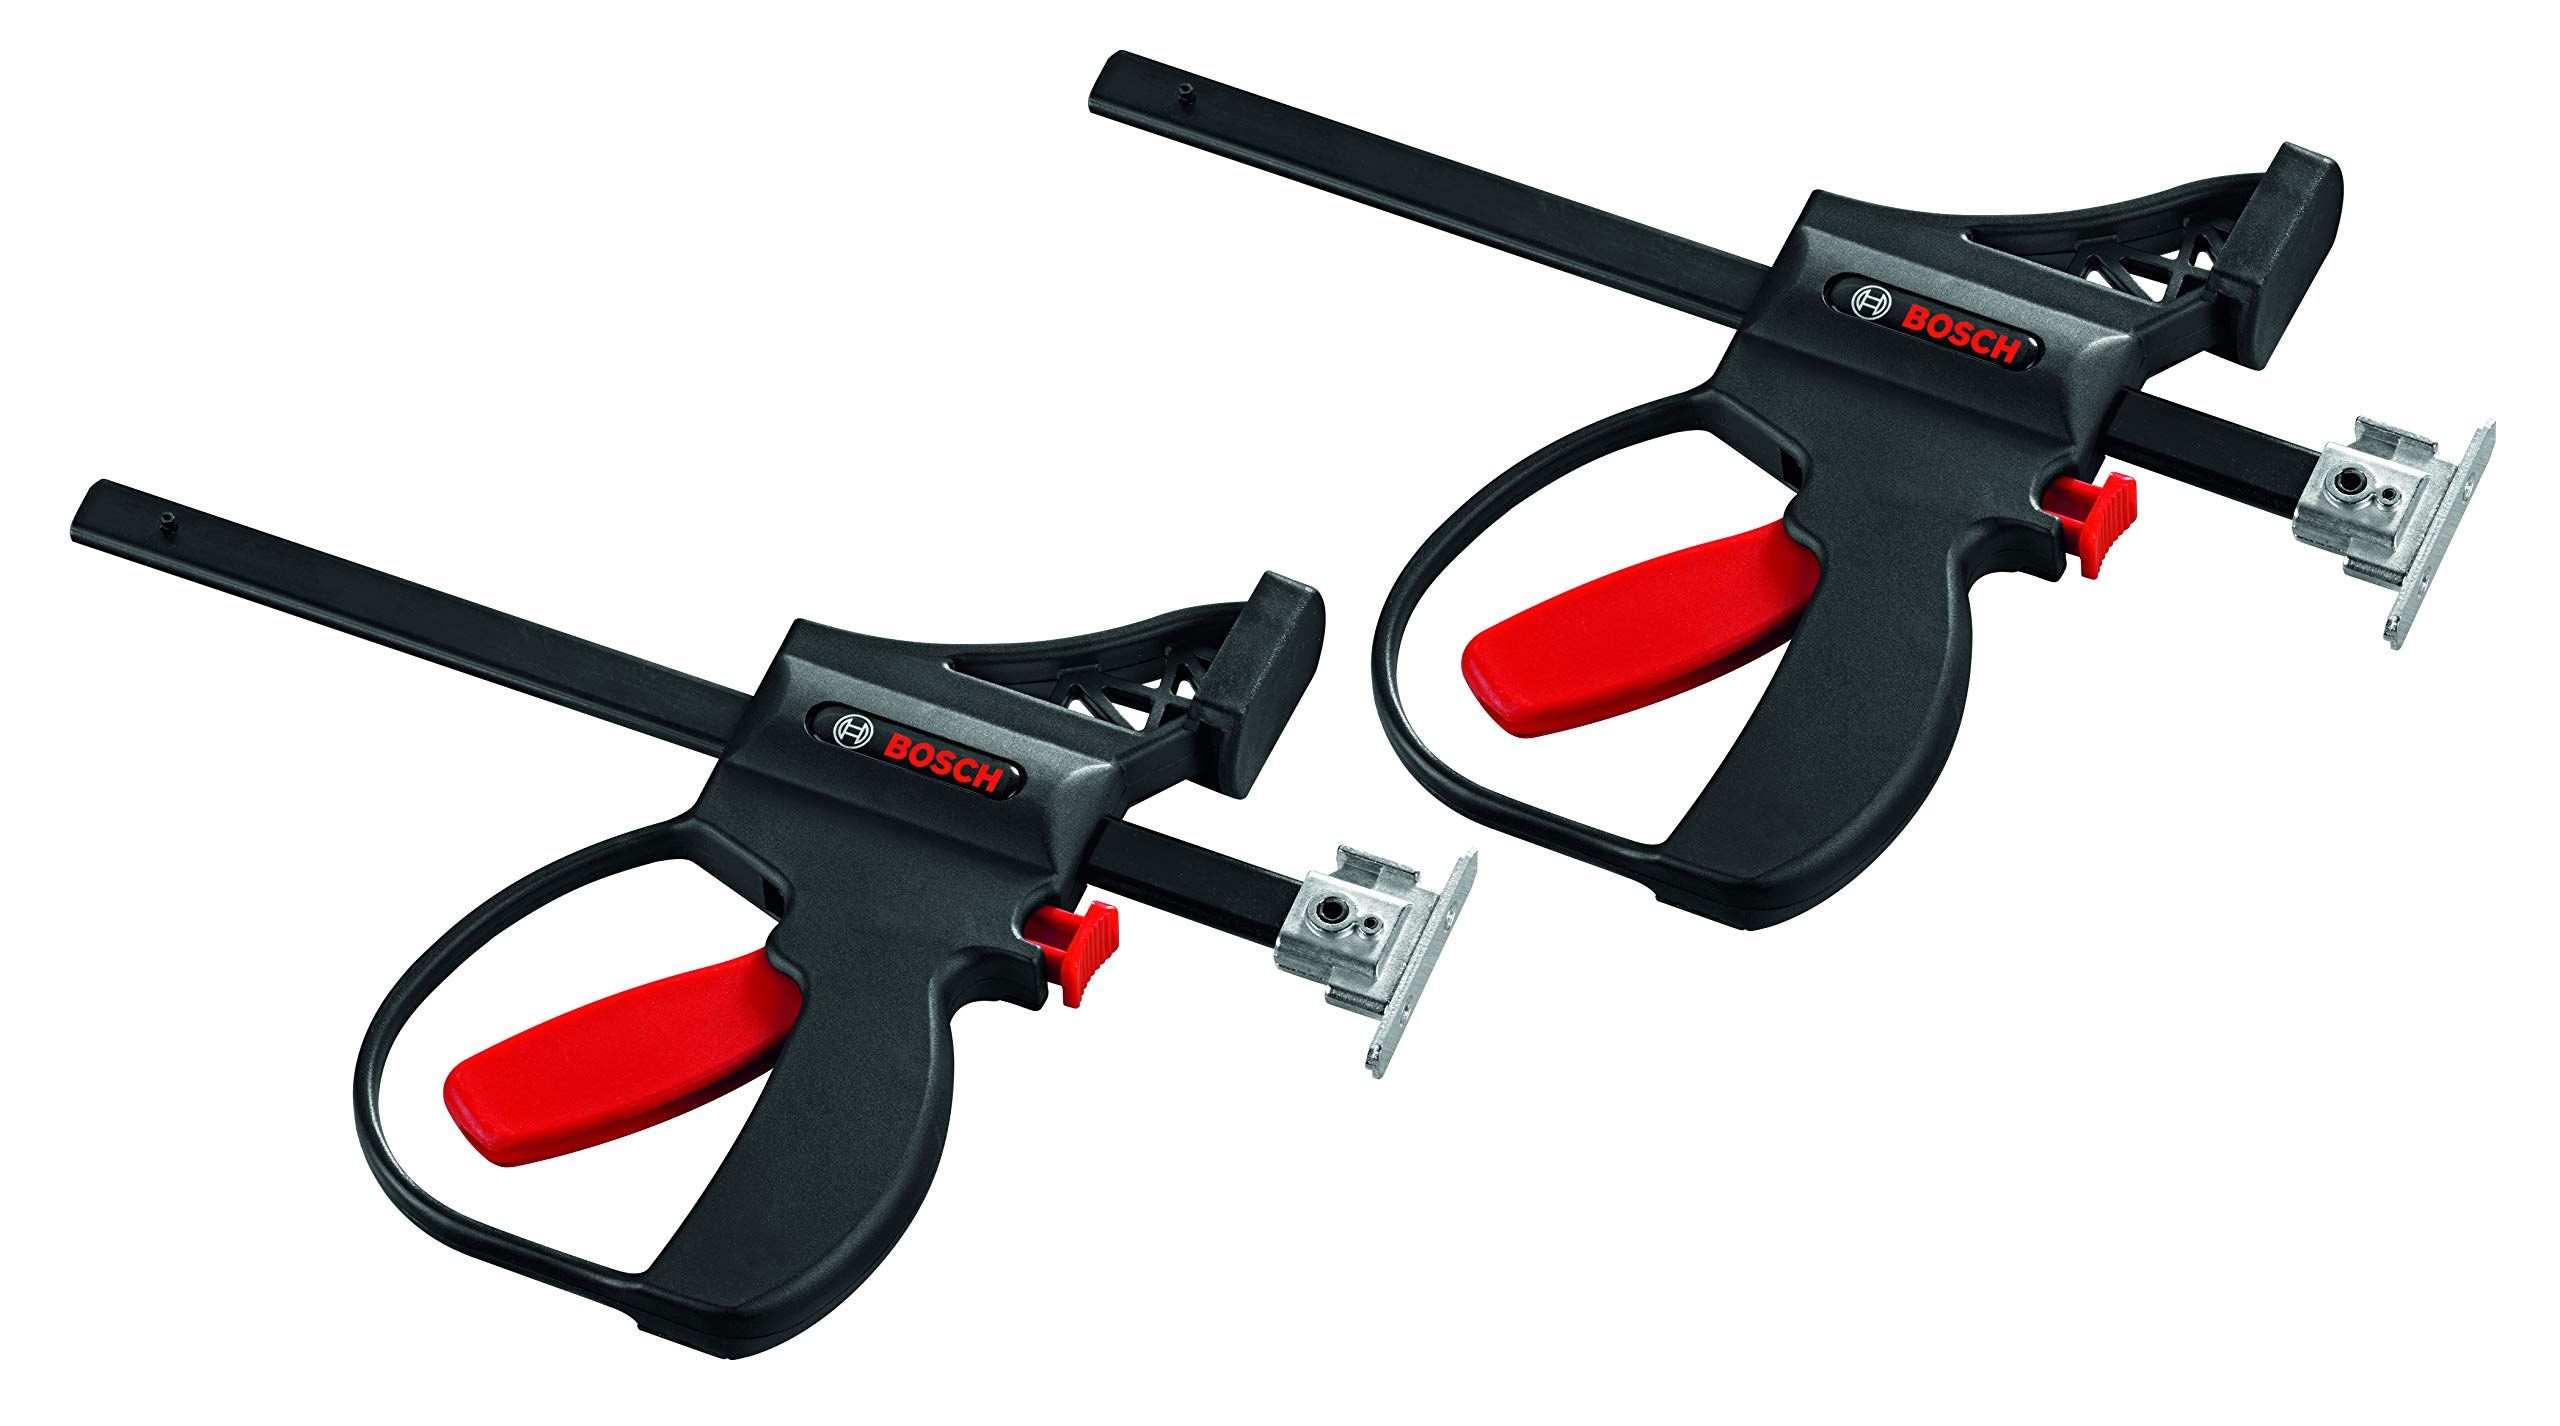 BOSCH FSNKZW Track Quick Clamps (2 Pc.) by Bosch